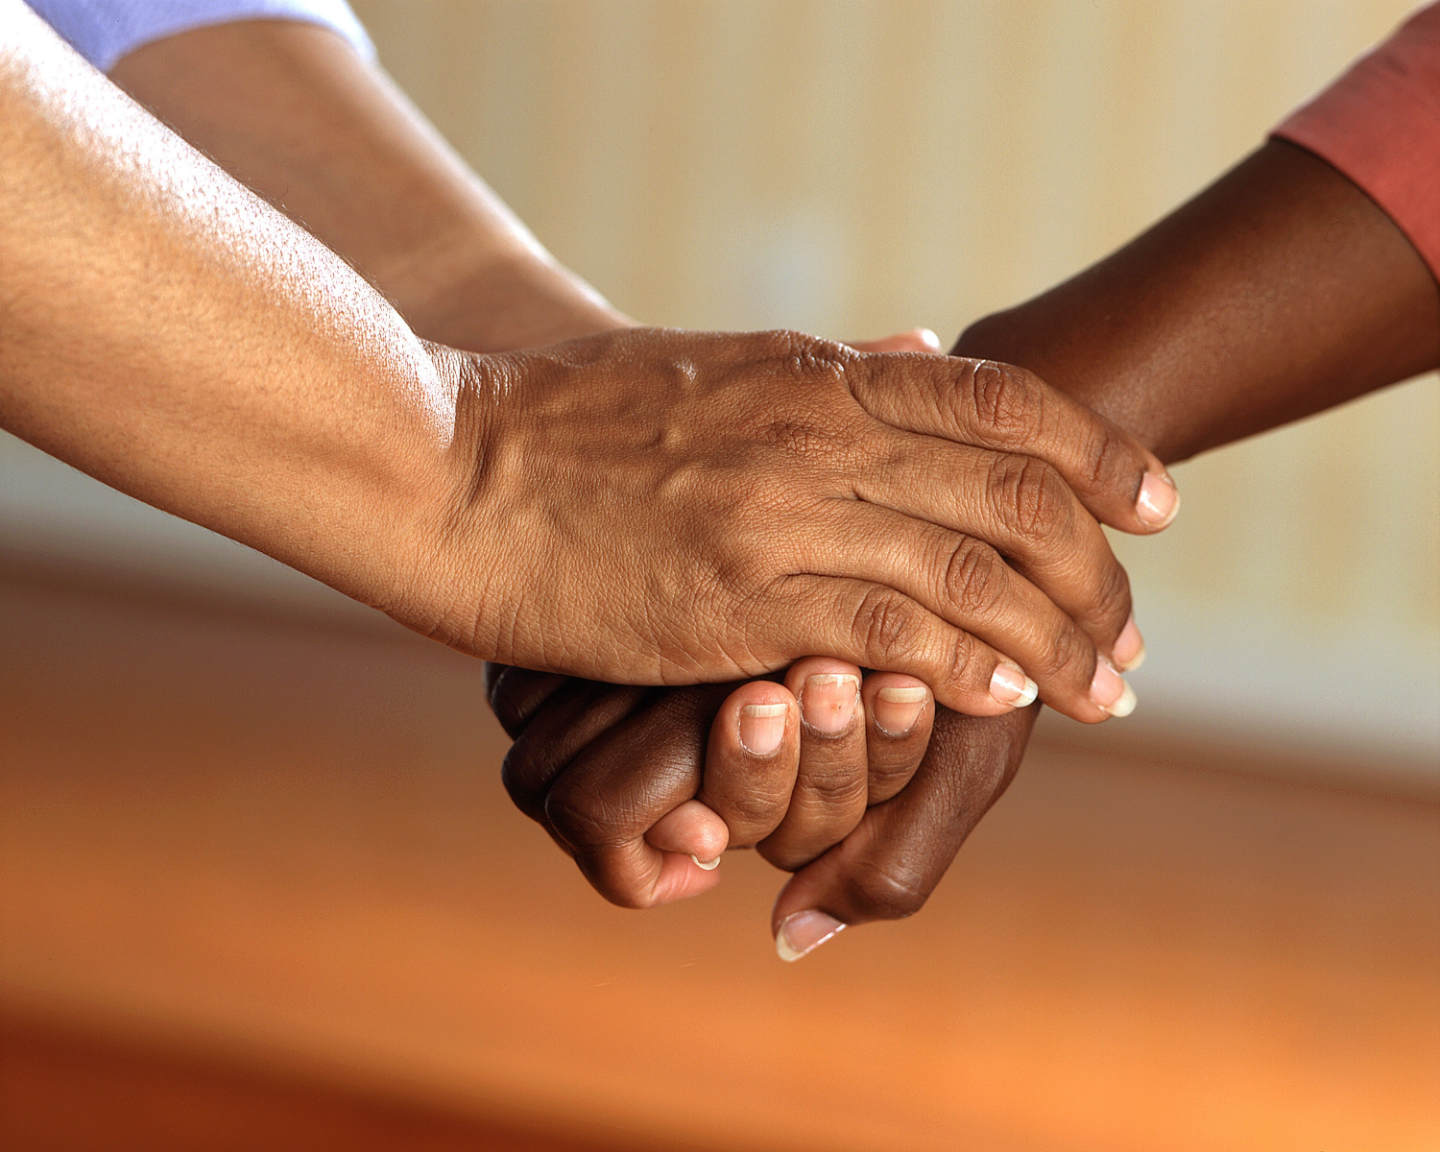 Care giver reassures patient